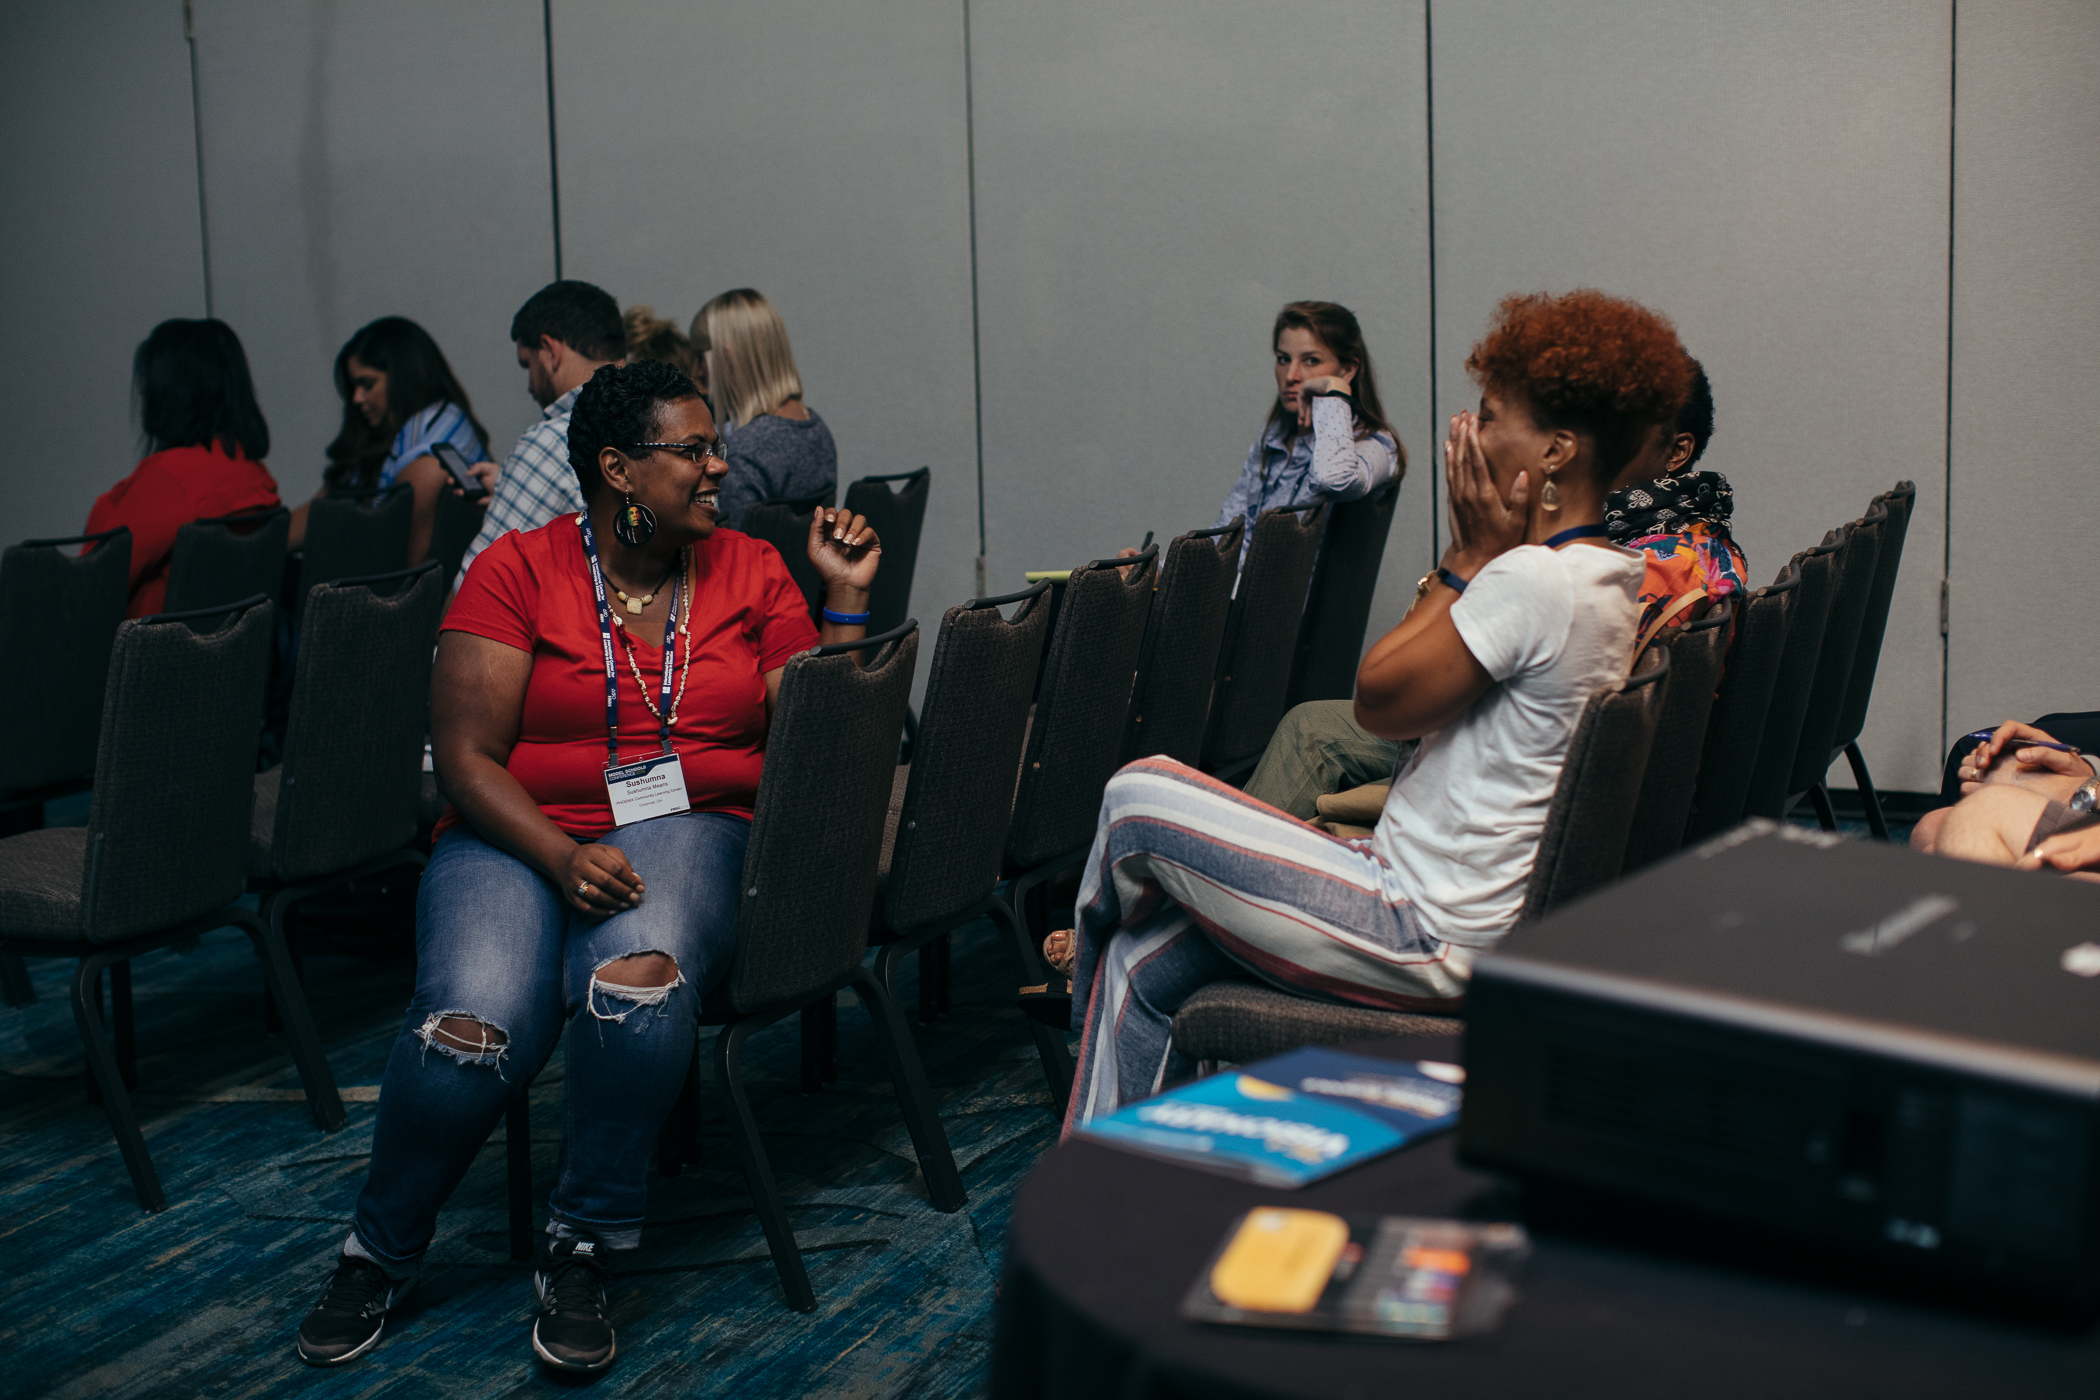 live event commercial photography brand storytelling for education florida conference photographer ©2018abigailbobophotography-125.jpg